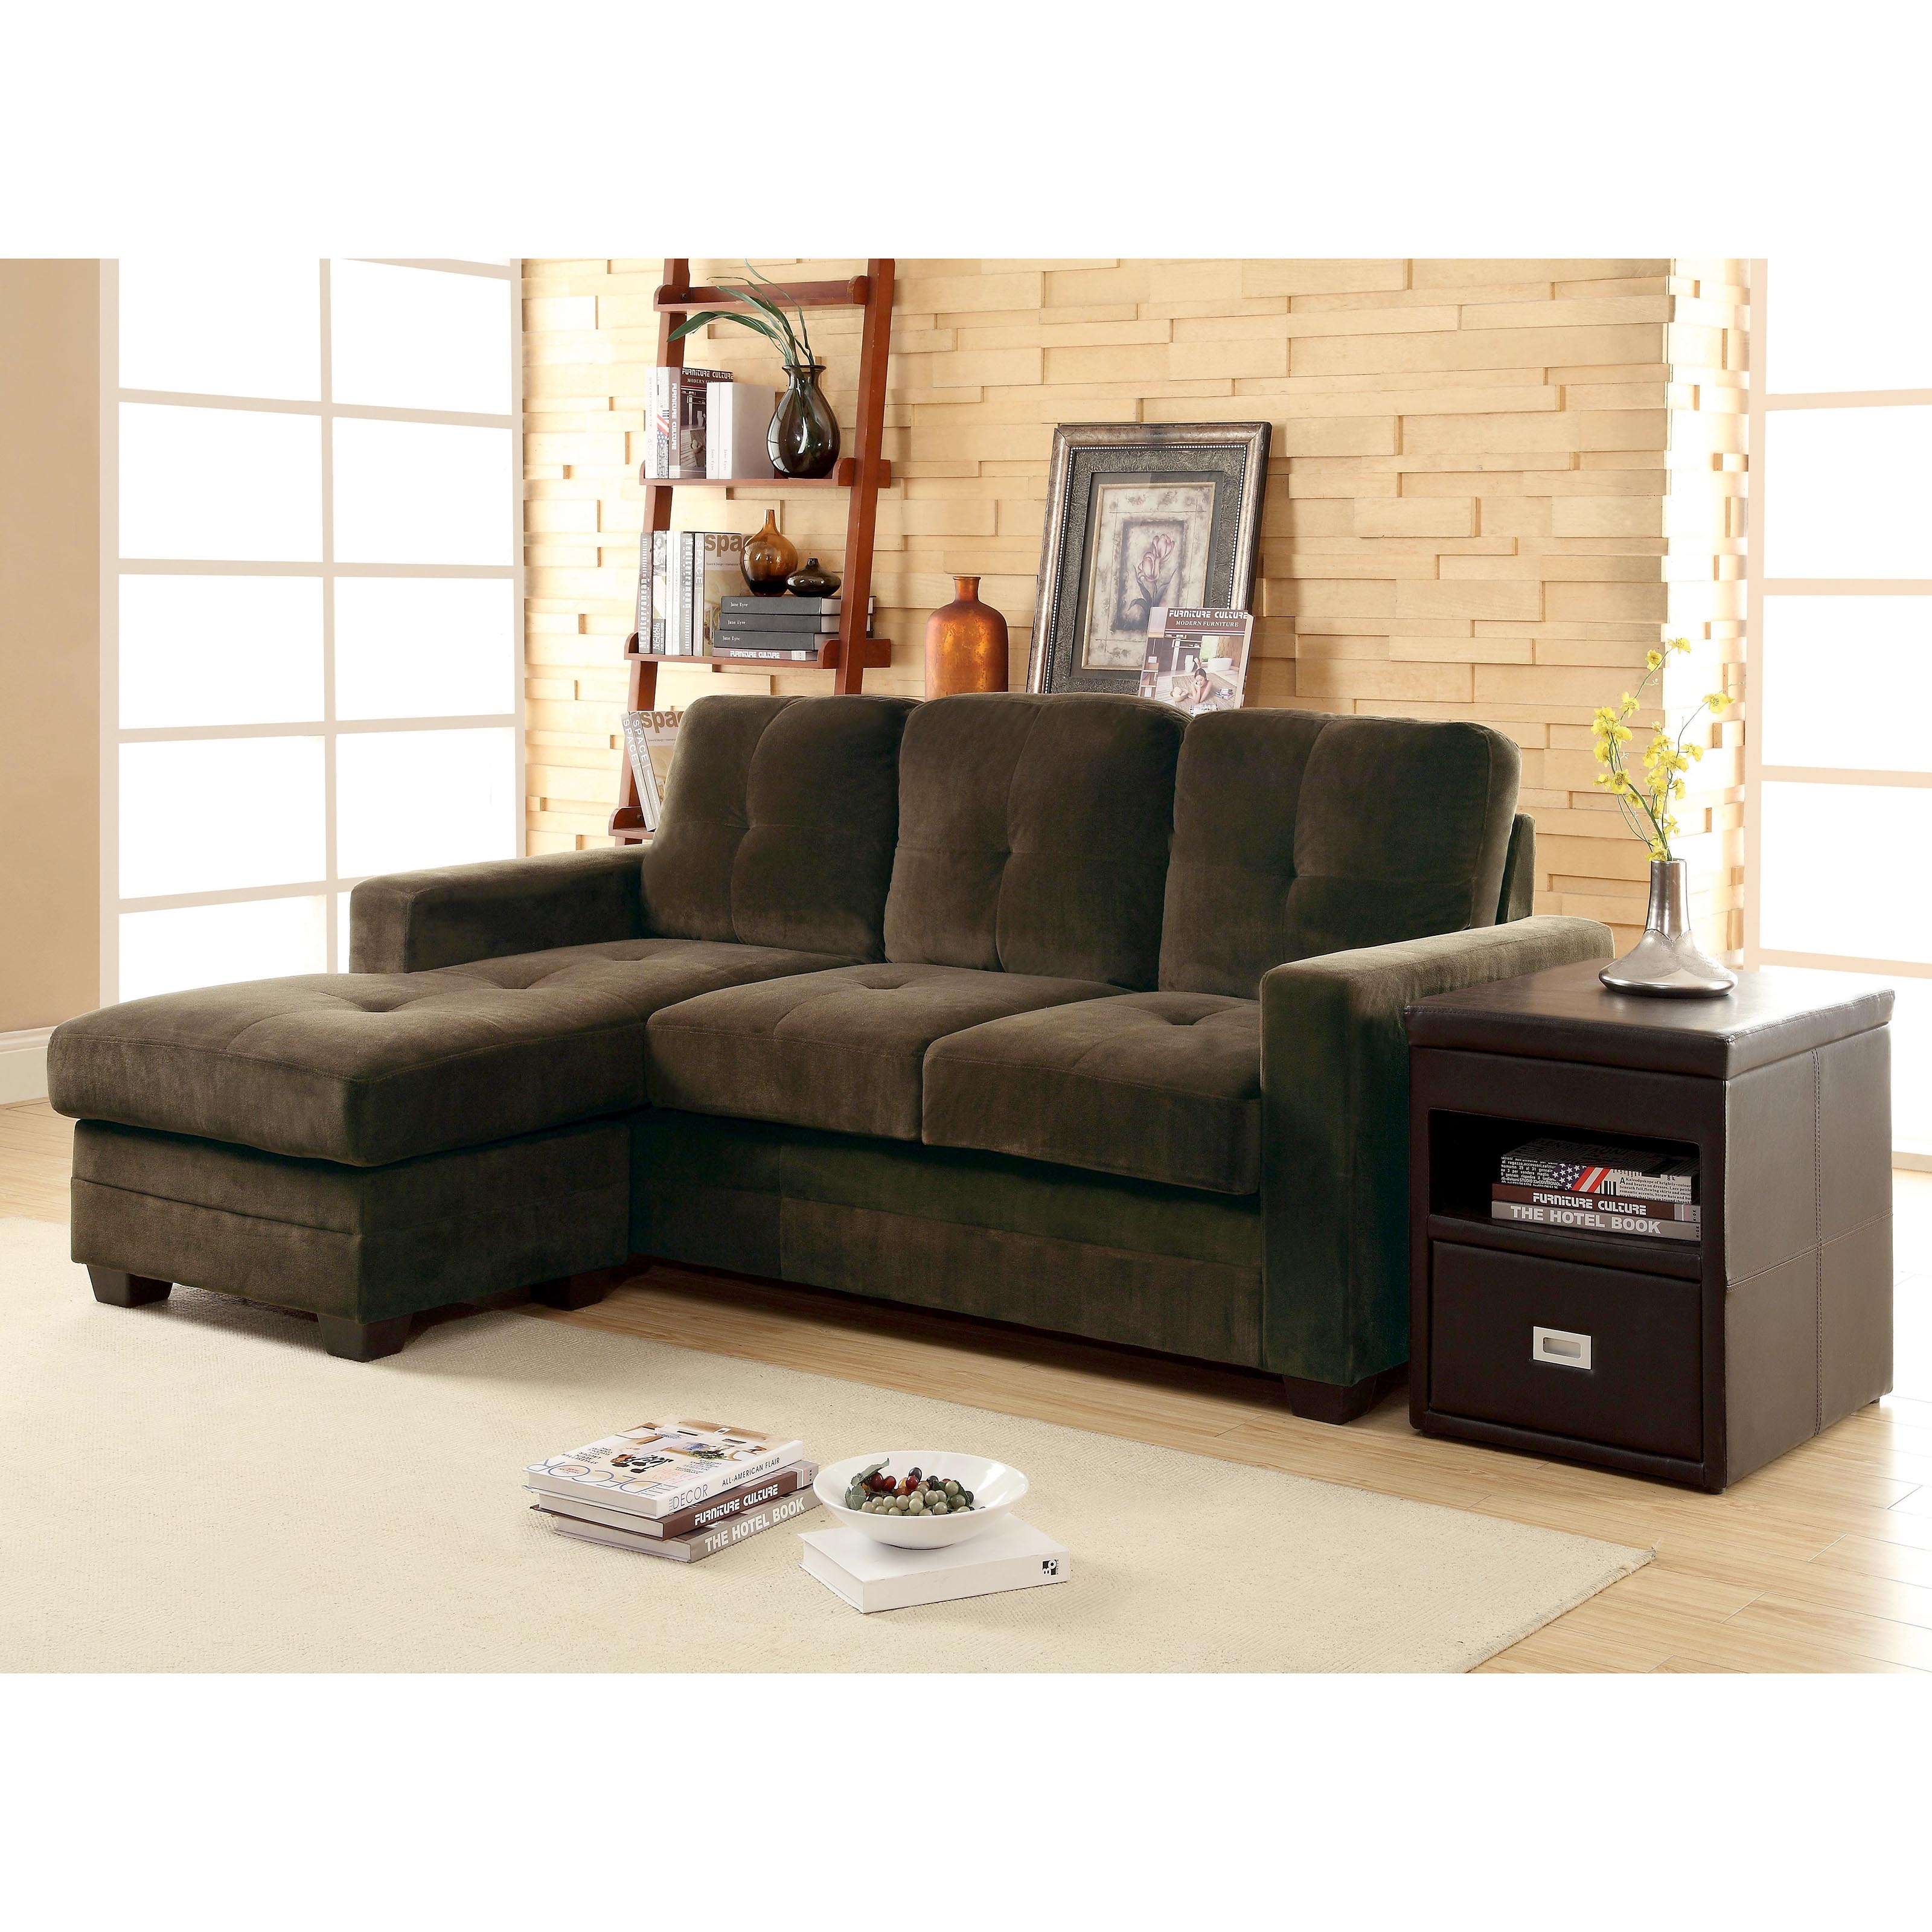 Phelps Sectional Sofa with Chaise Brown